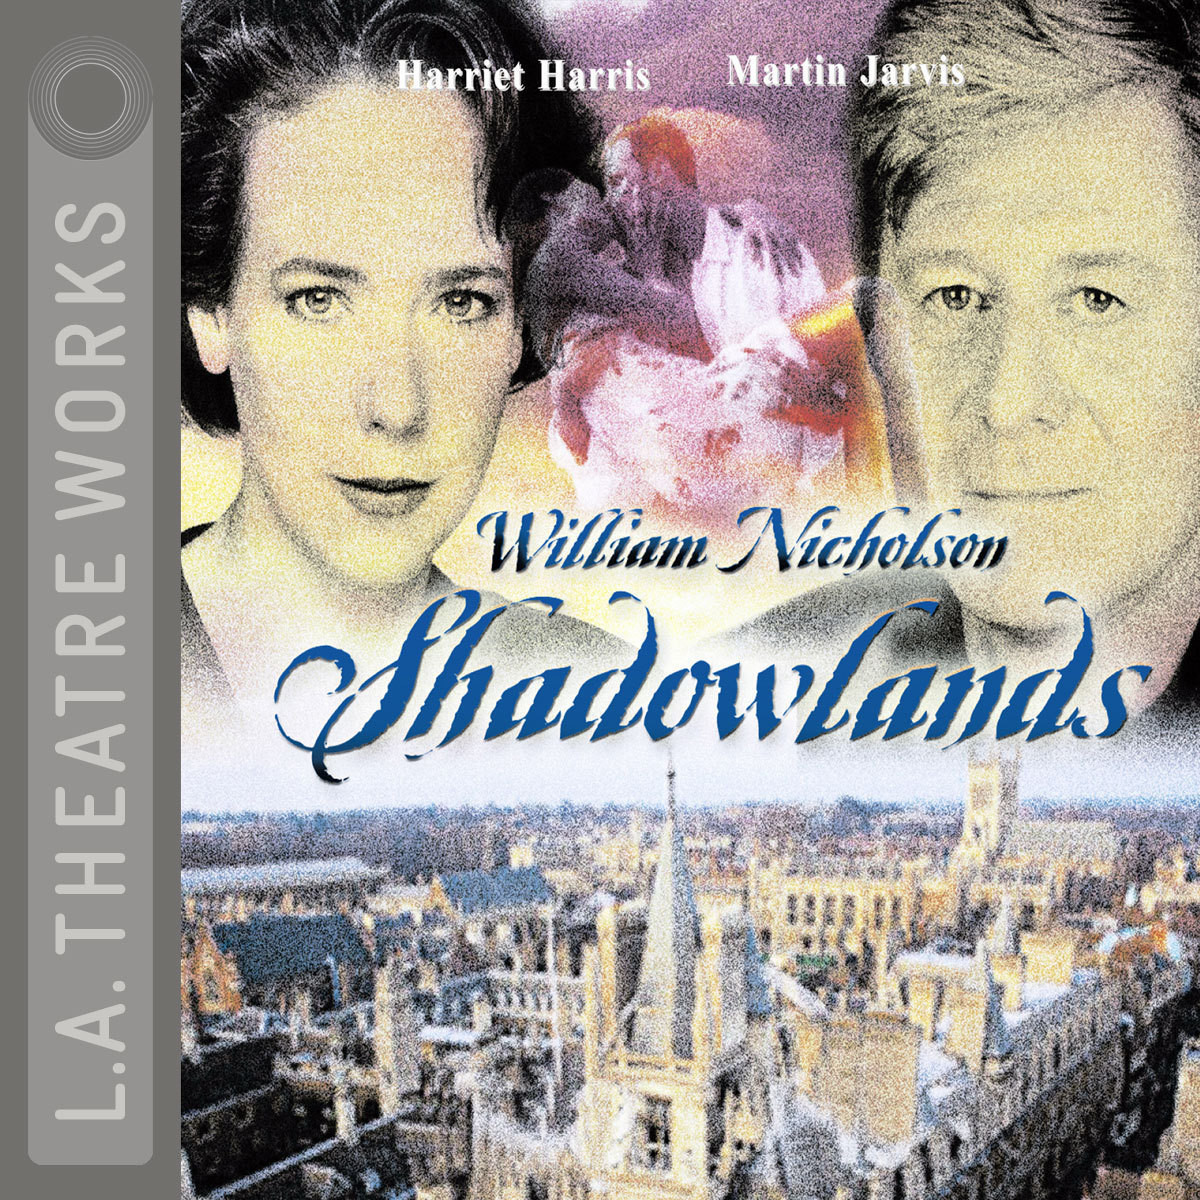 Printable Shadowlands Audiobook Cover Art